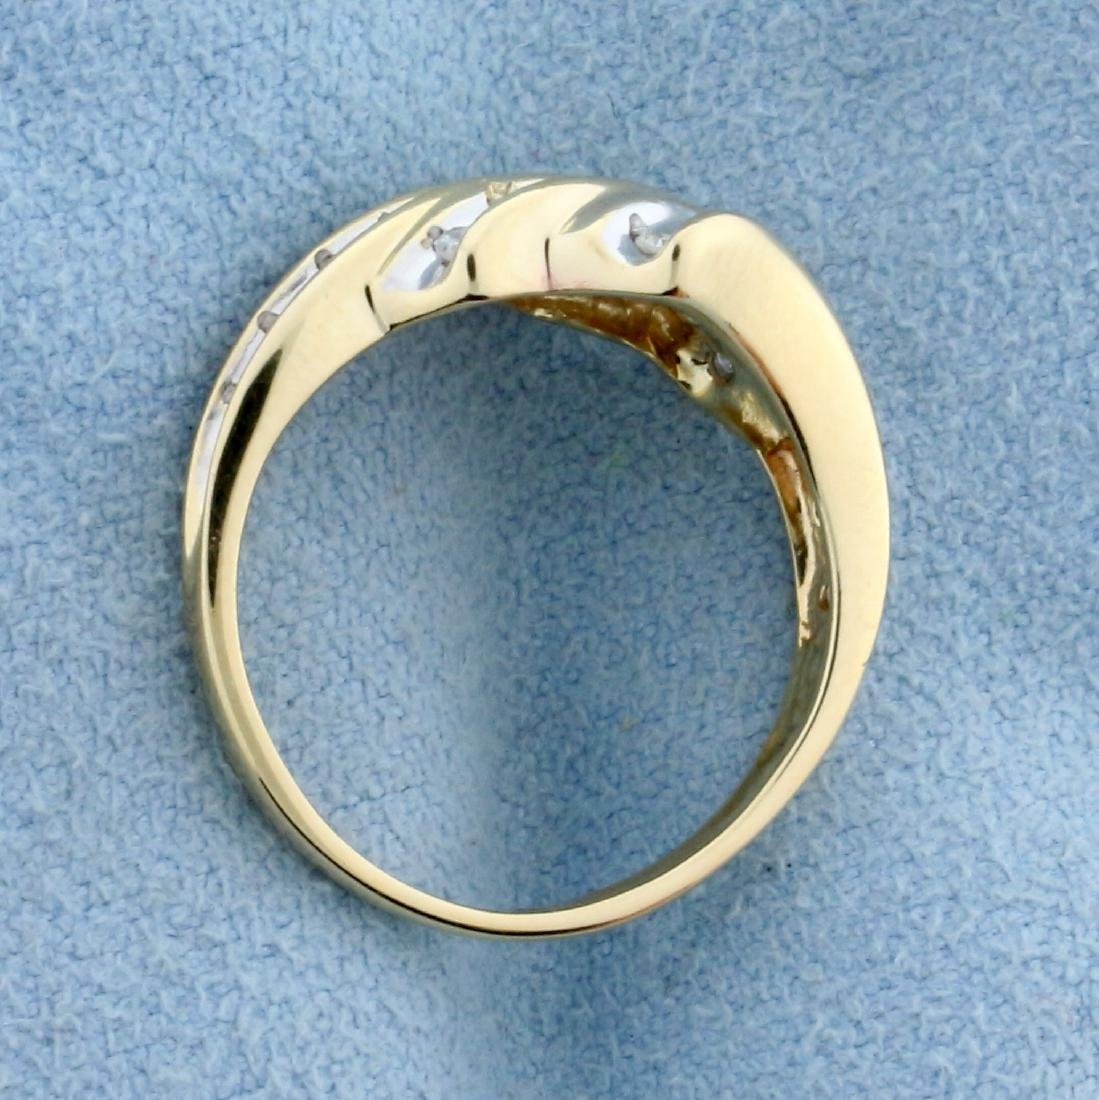 1/4ct TW Diamond Ring in 10K Yellow and White Gold - 3